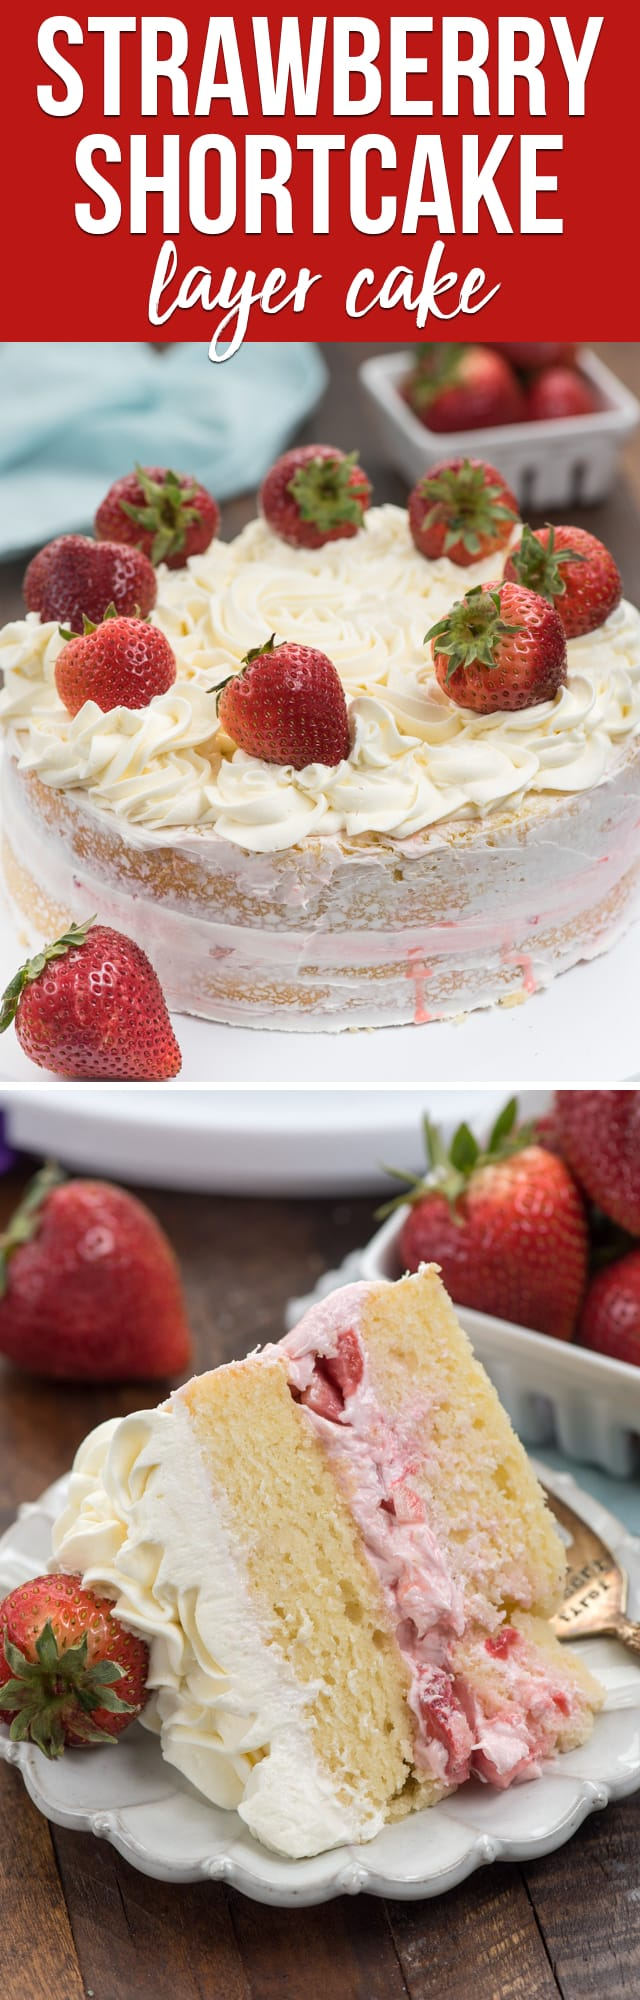 Strawberry Shortcake Layer Cake is a fun cake for strawberry season, made with yellow cake, strawberry filling and whipped cream frosting! I'm not a great cake decorator but this was easy to make!